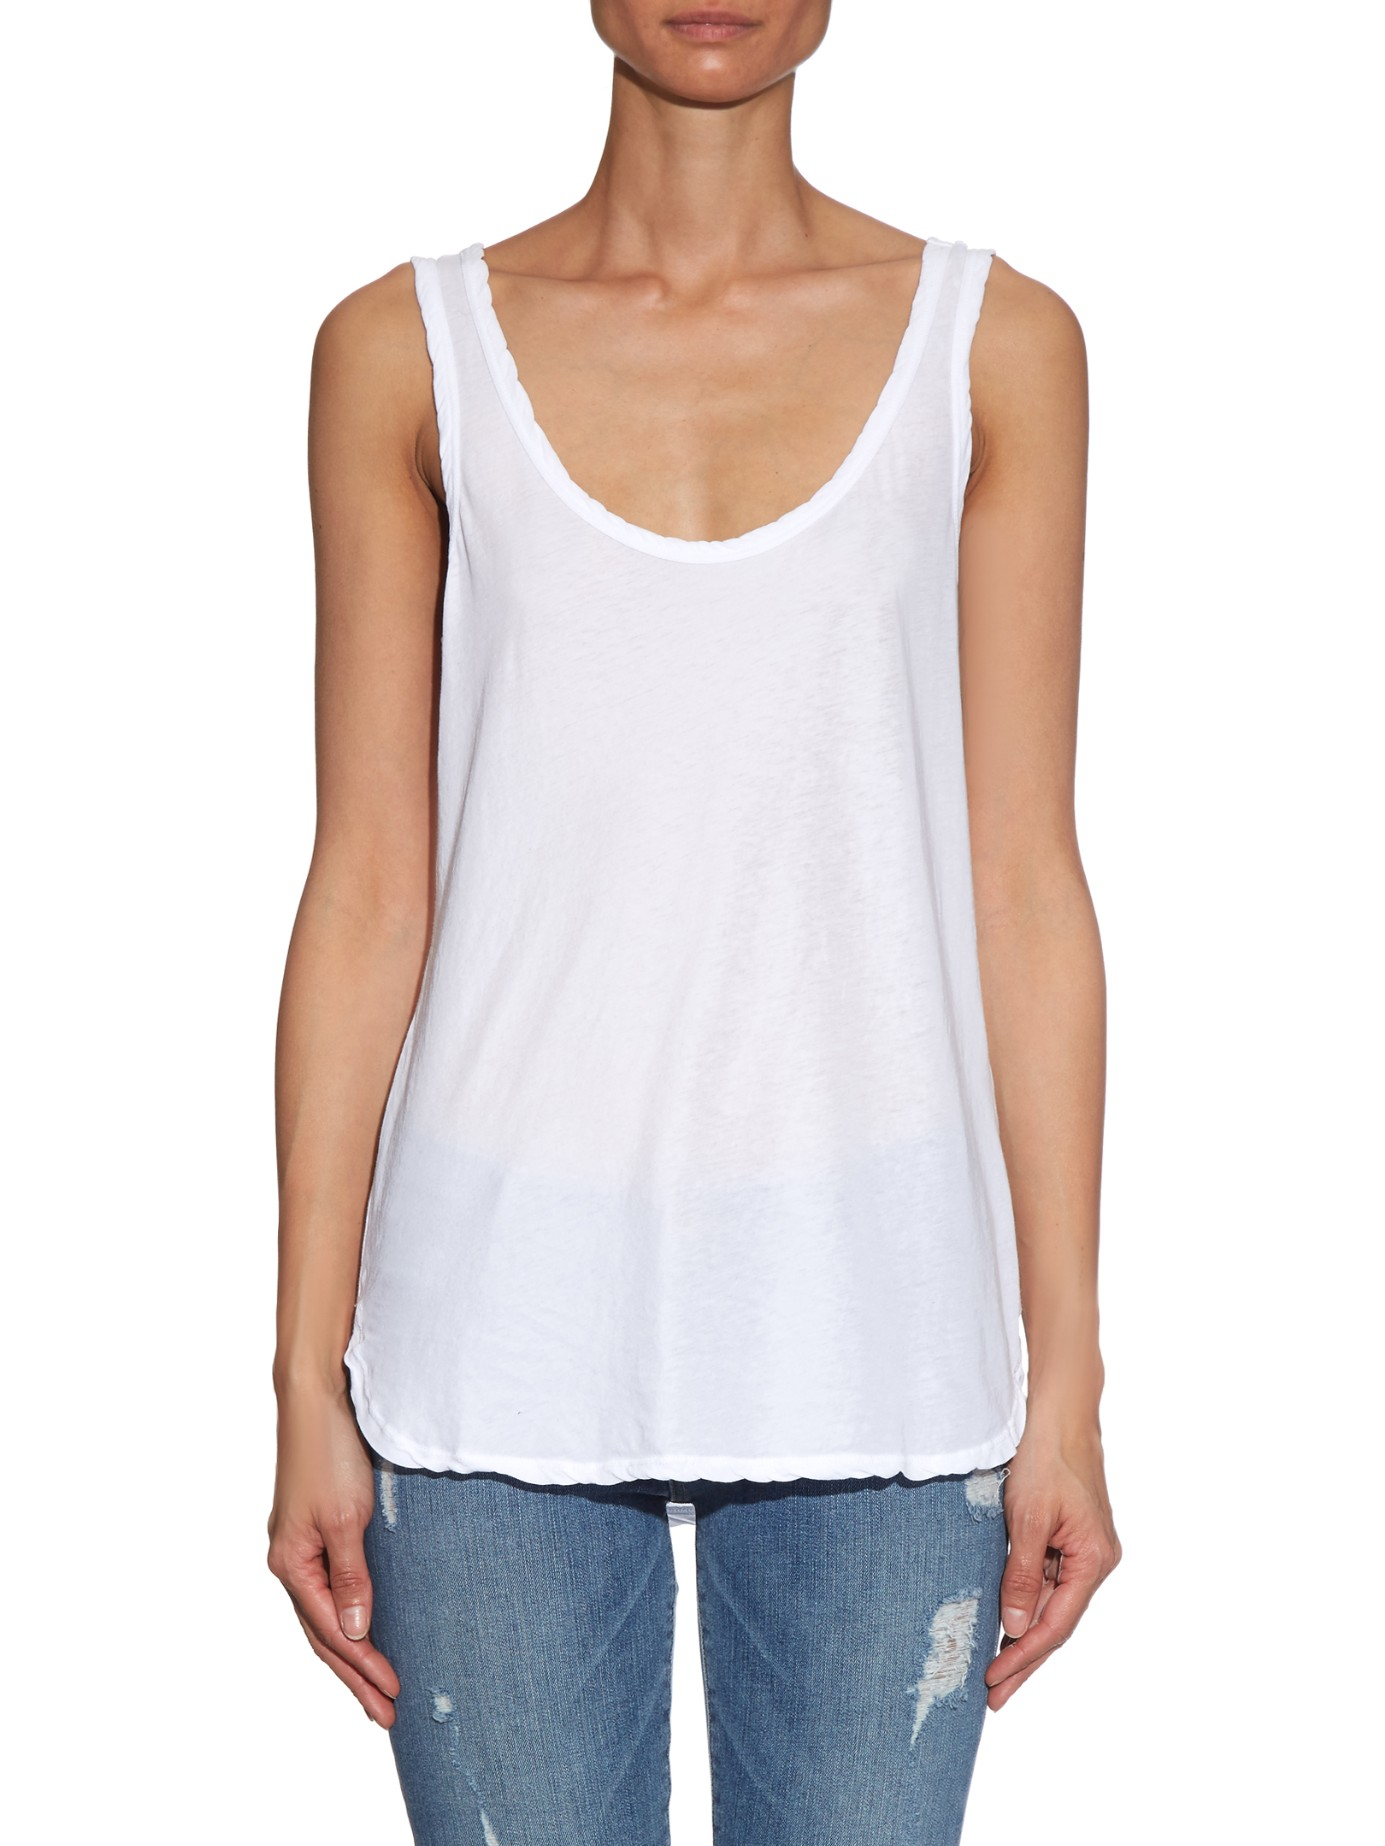 33180df0509861 Lyst - James Perse Relaxed-fit Cotton Tank Top in White